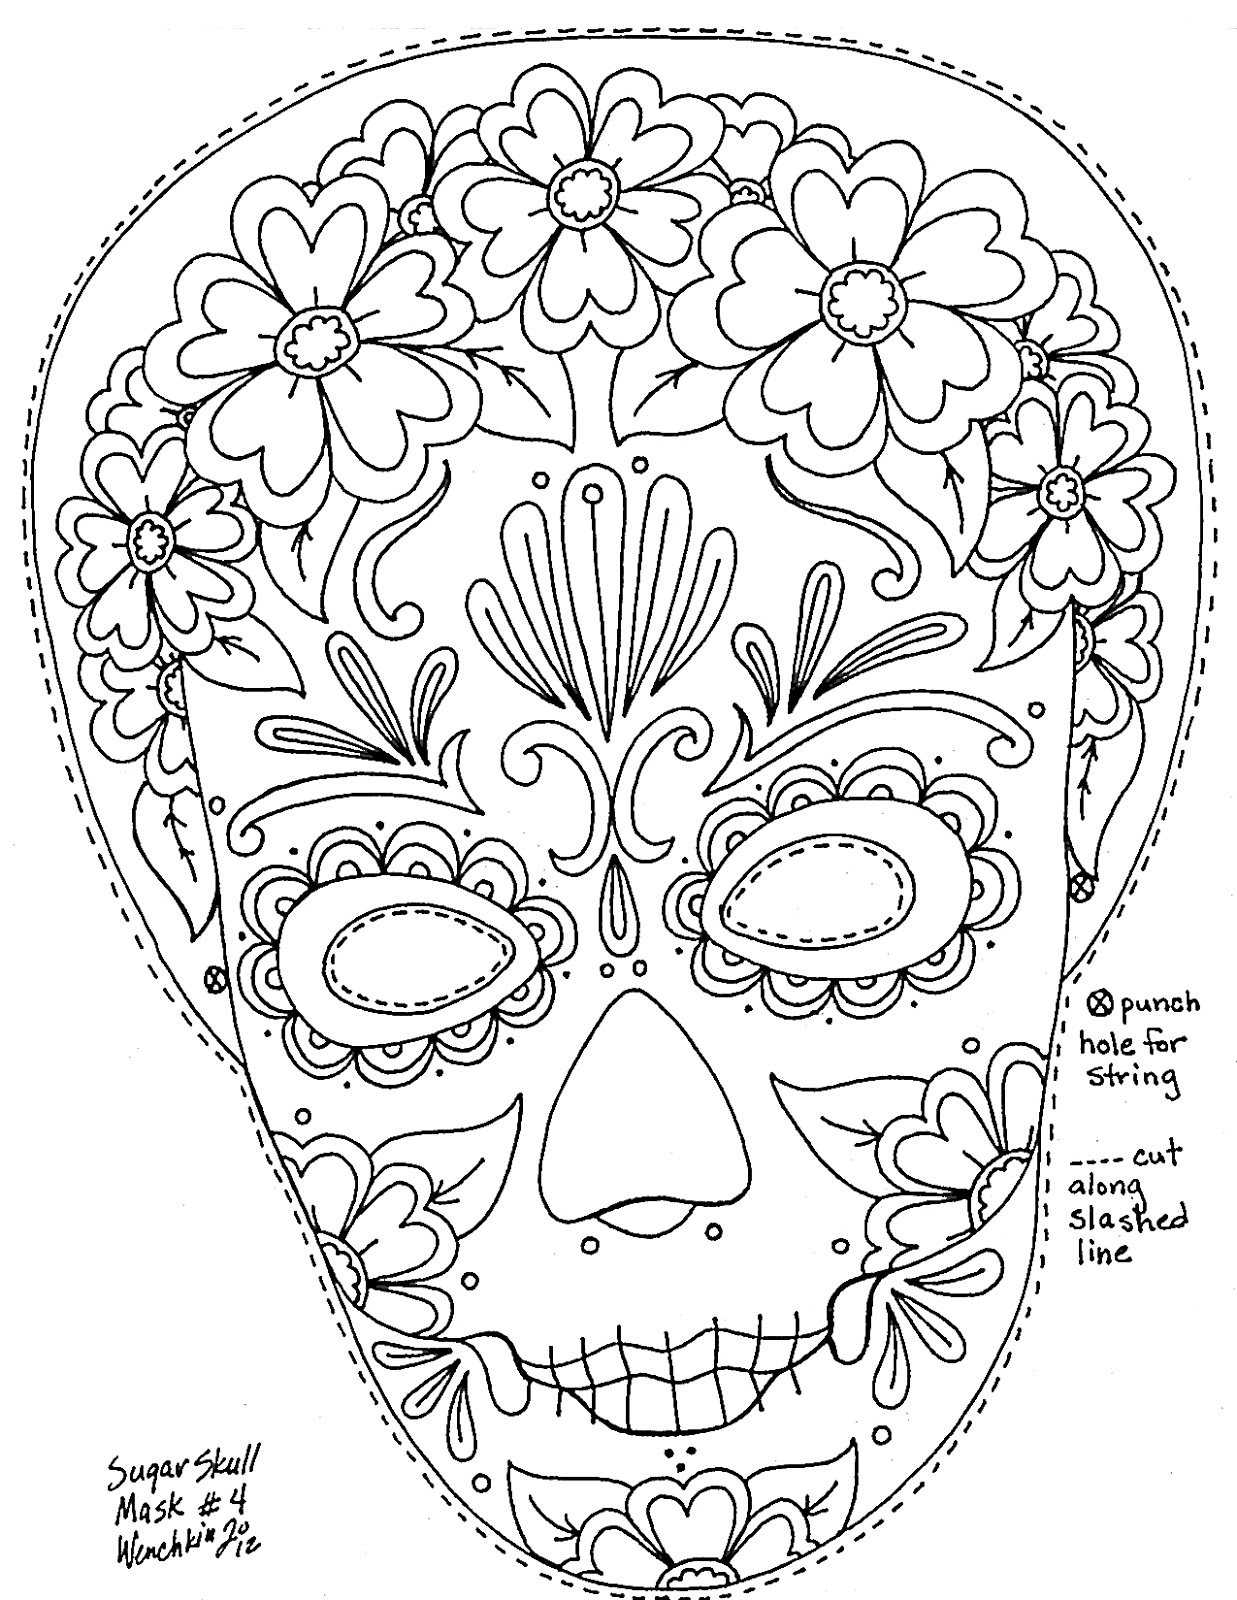 coloring pages skull cfsh 21st century doggerel august 2013 coloring skull pages